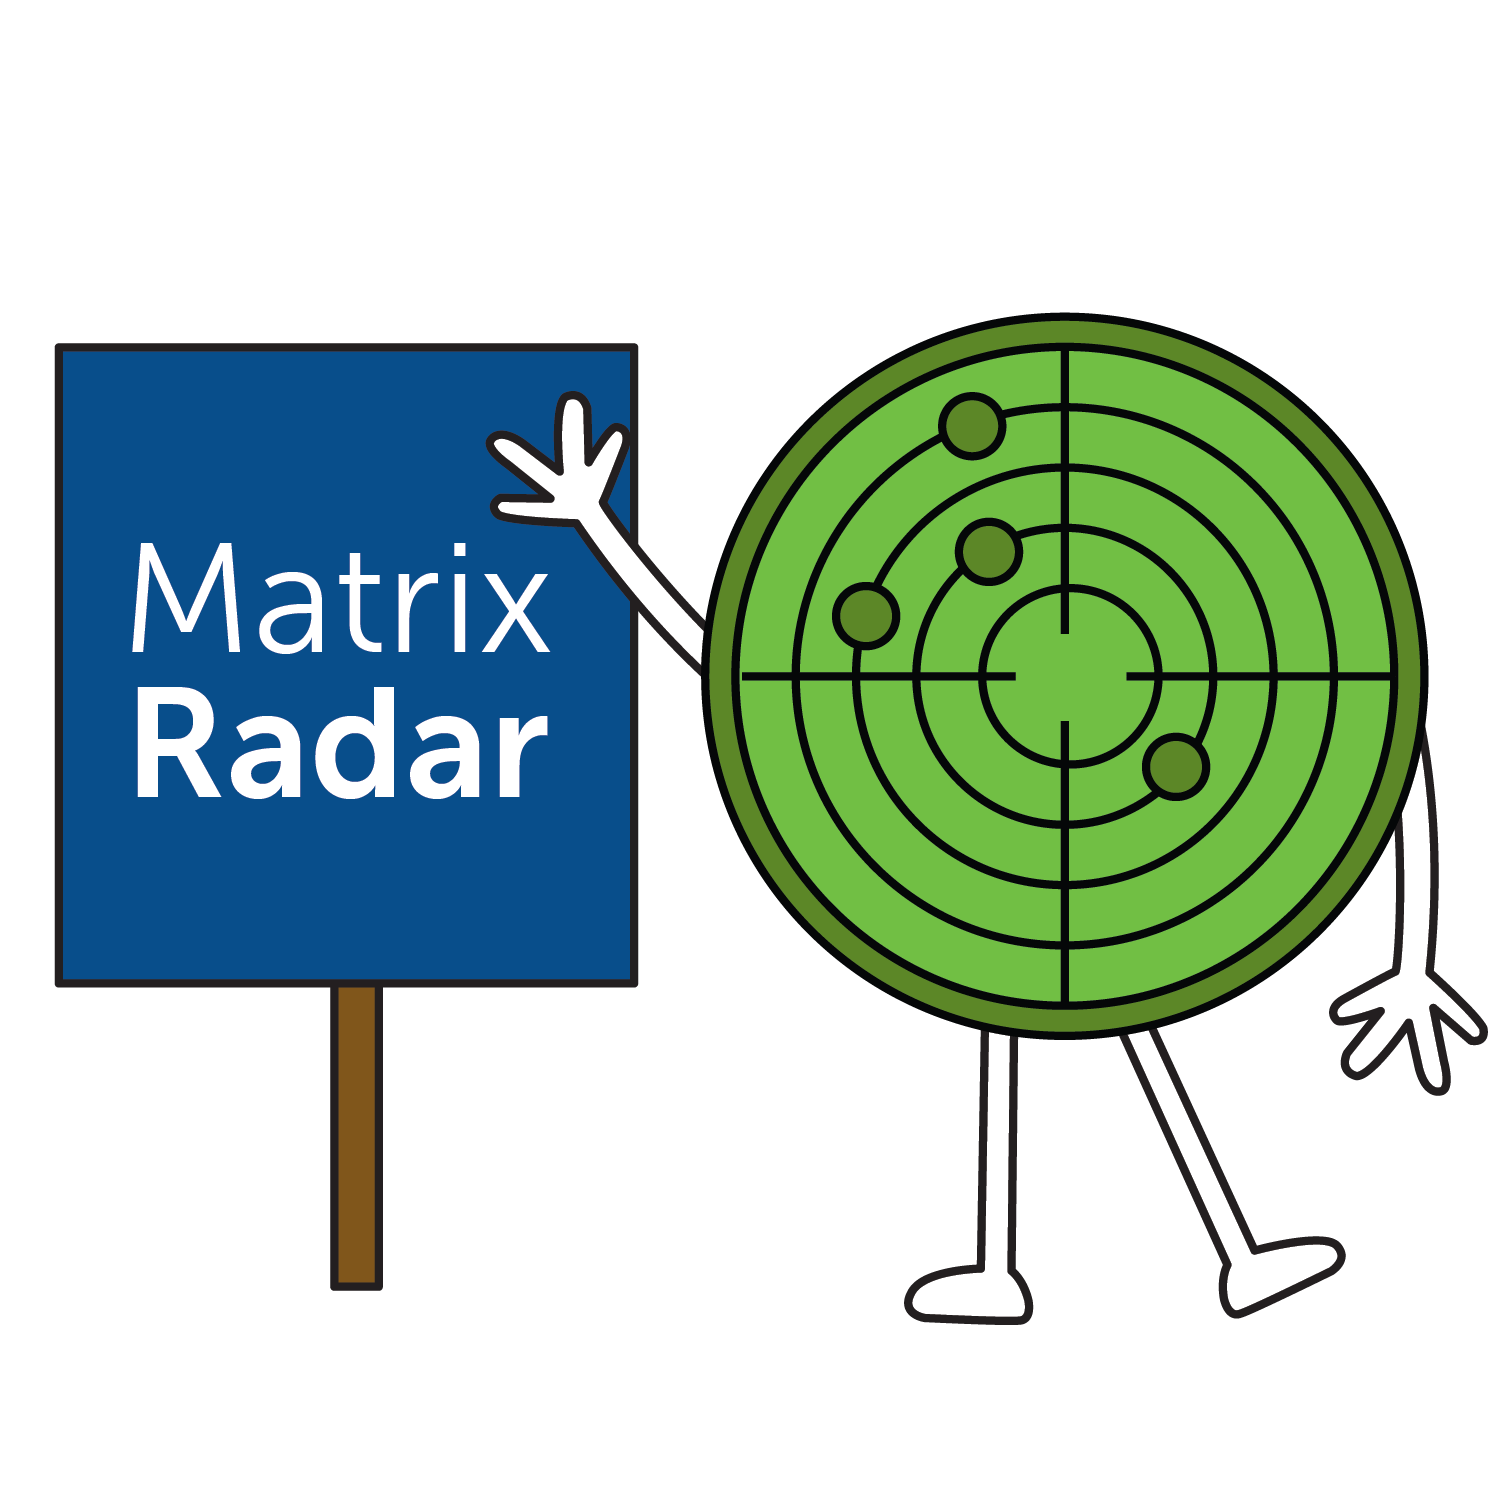 Matrix radar adventures in. Number 1 clipart lucky